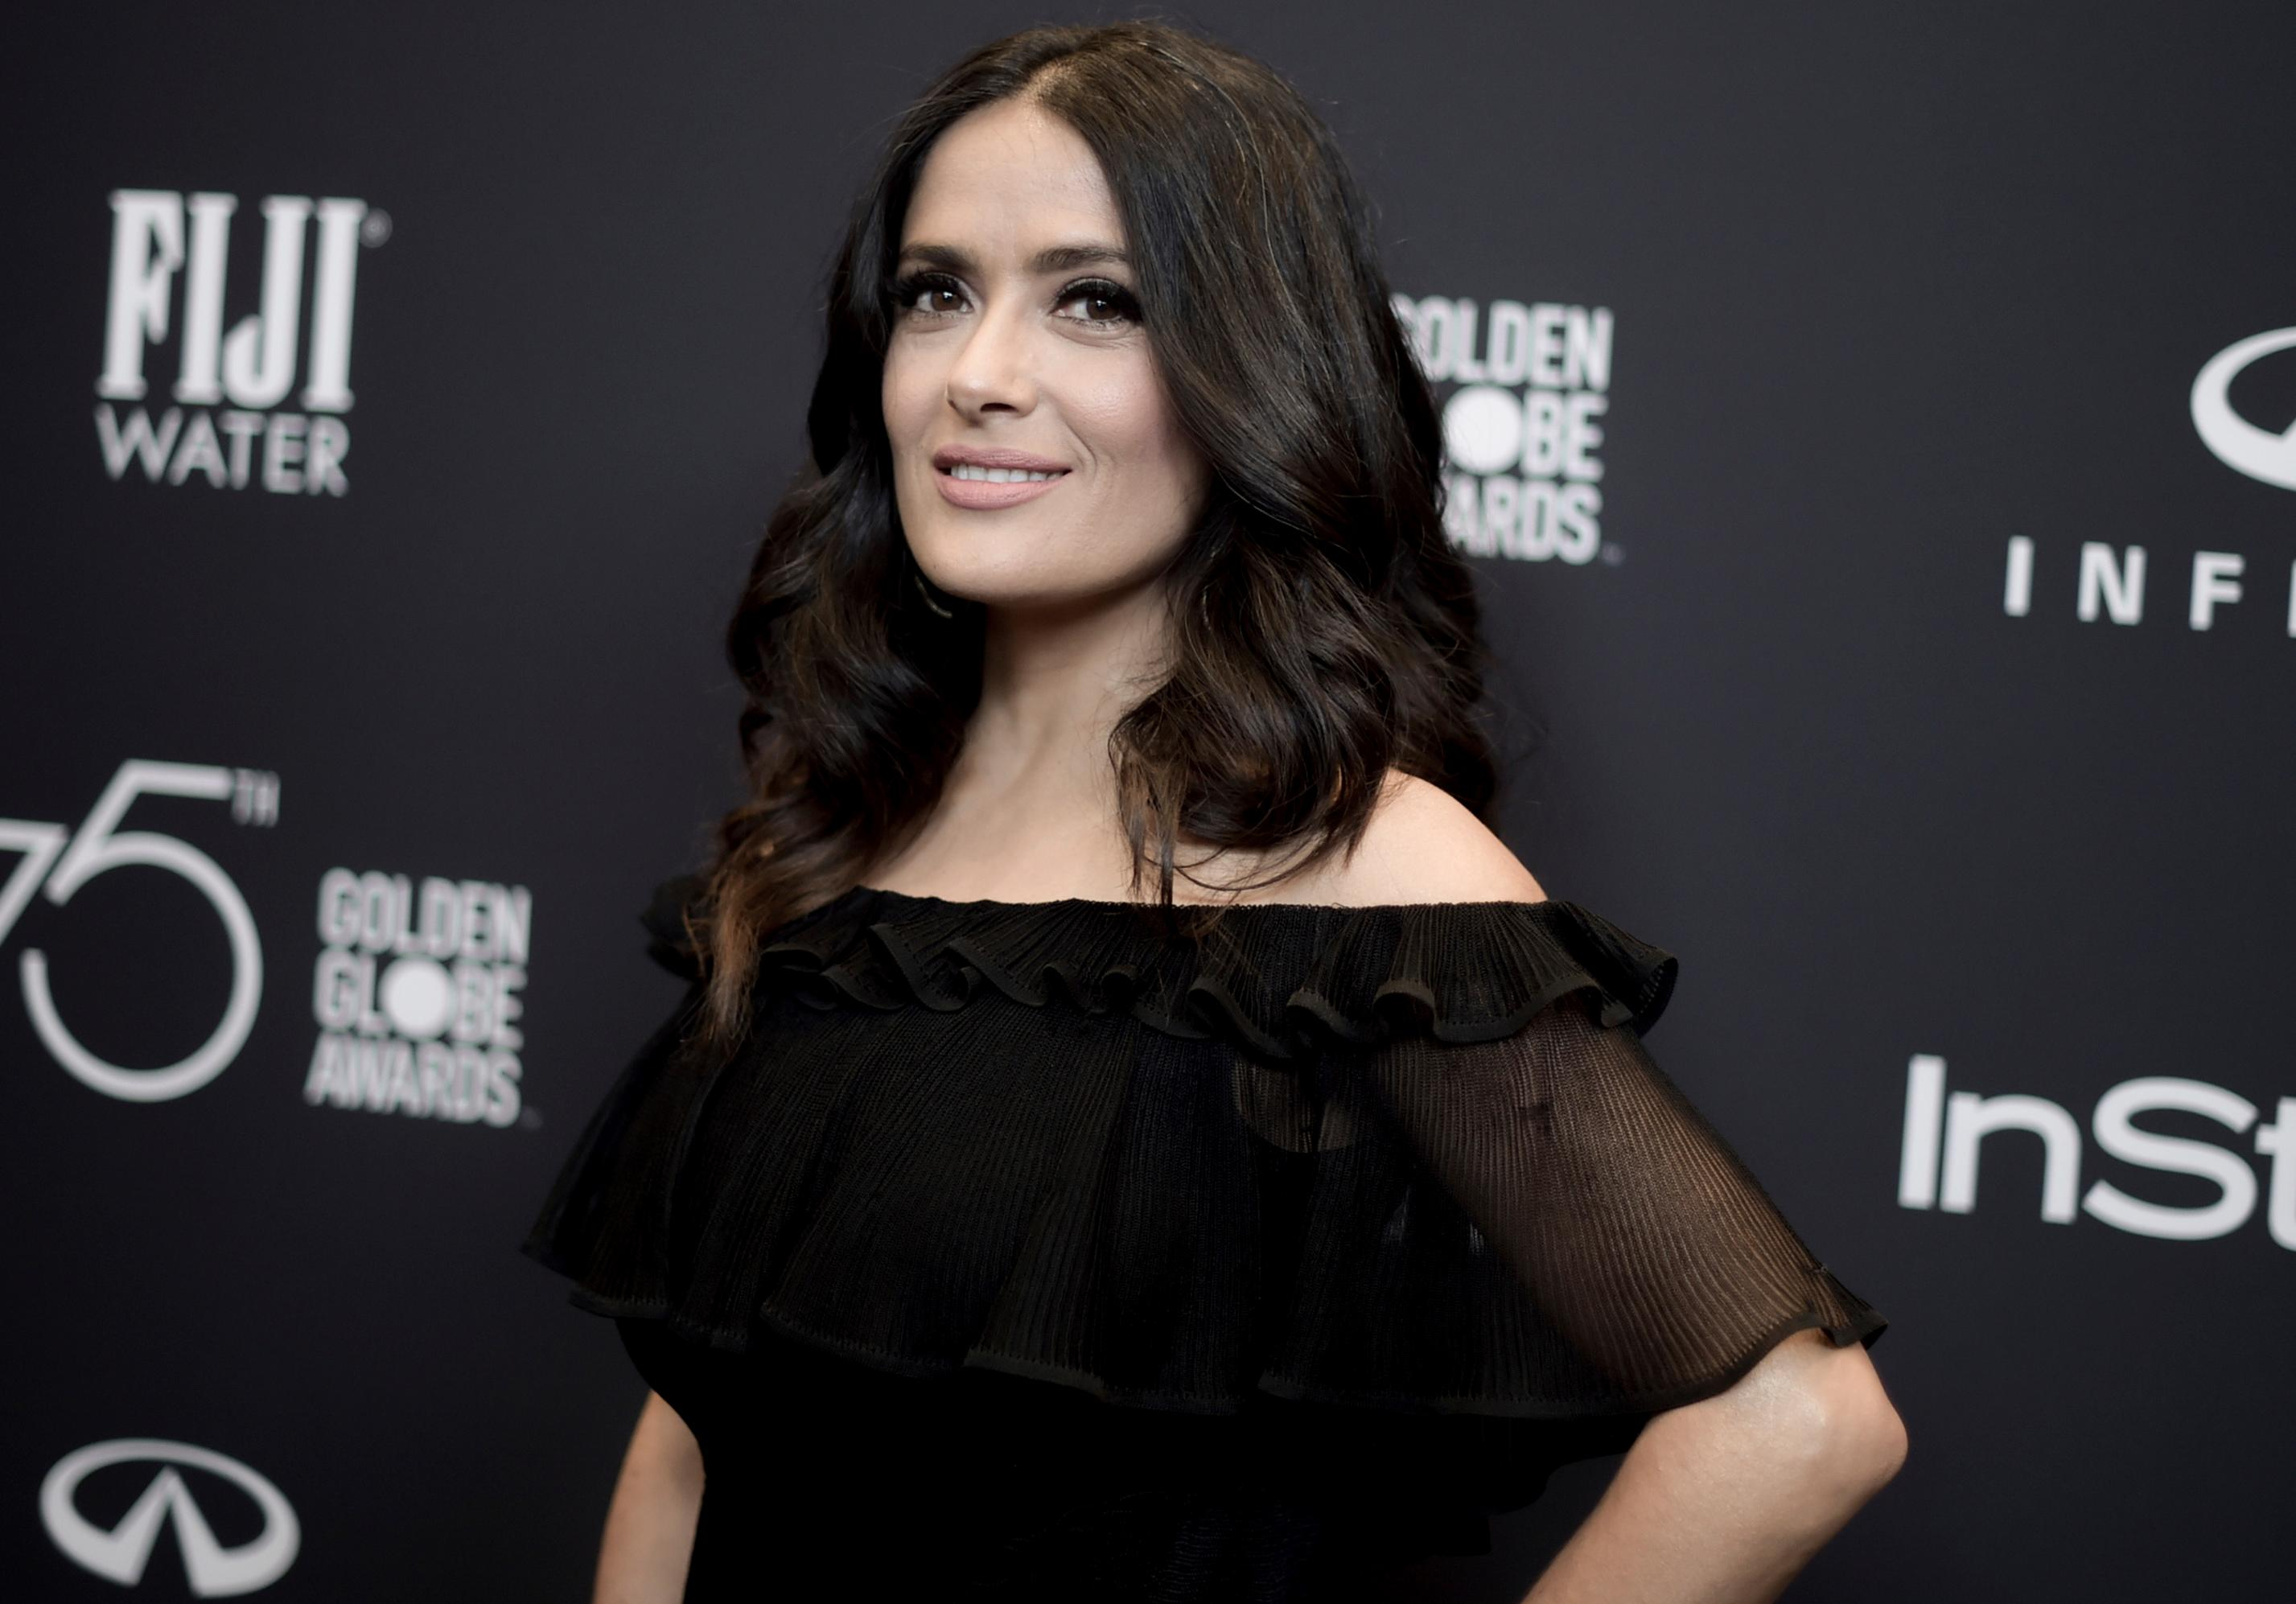 FILE - In this Nov. 15, 2017 file photo, actress Salma Hayek attends the HFPA and InStyle Celebrate the 2018 Golden Globe Awards Season in West Hollywood, Calif. (Photo by Richard Shotwell/Invision/AP, File)